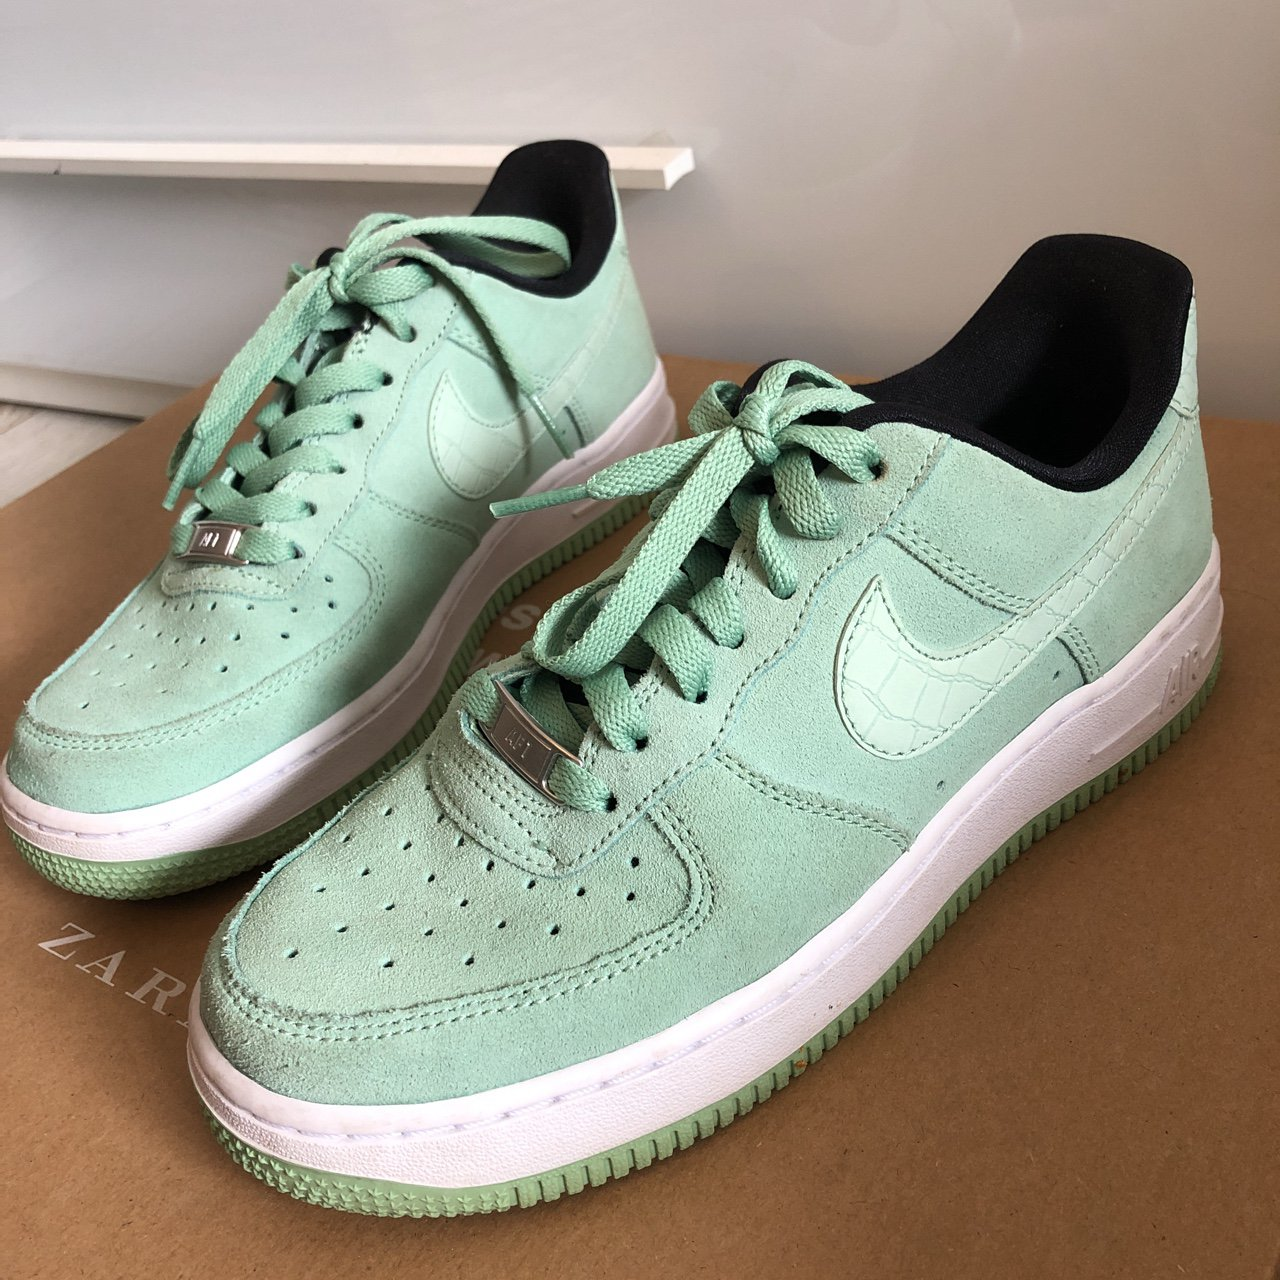 c795ee3f40b7 Nike Air Force mint green perfect condition size 4 MESSAGE - Depop